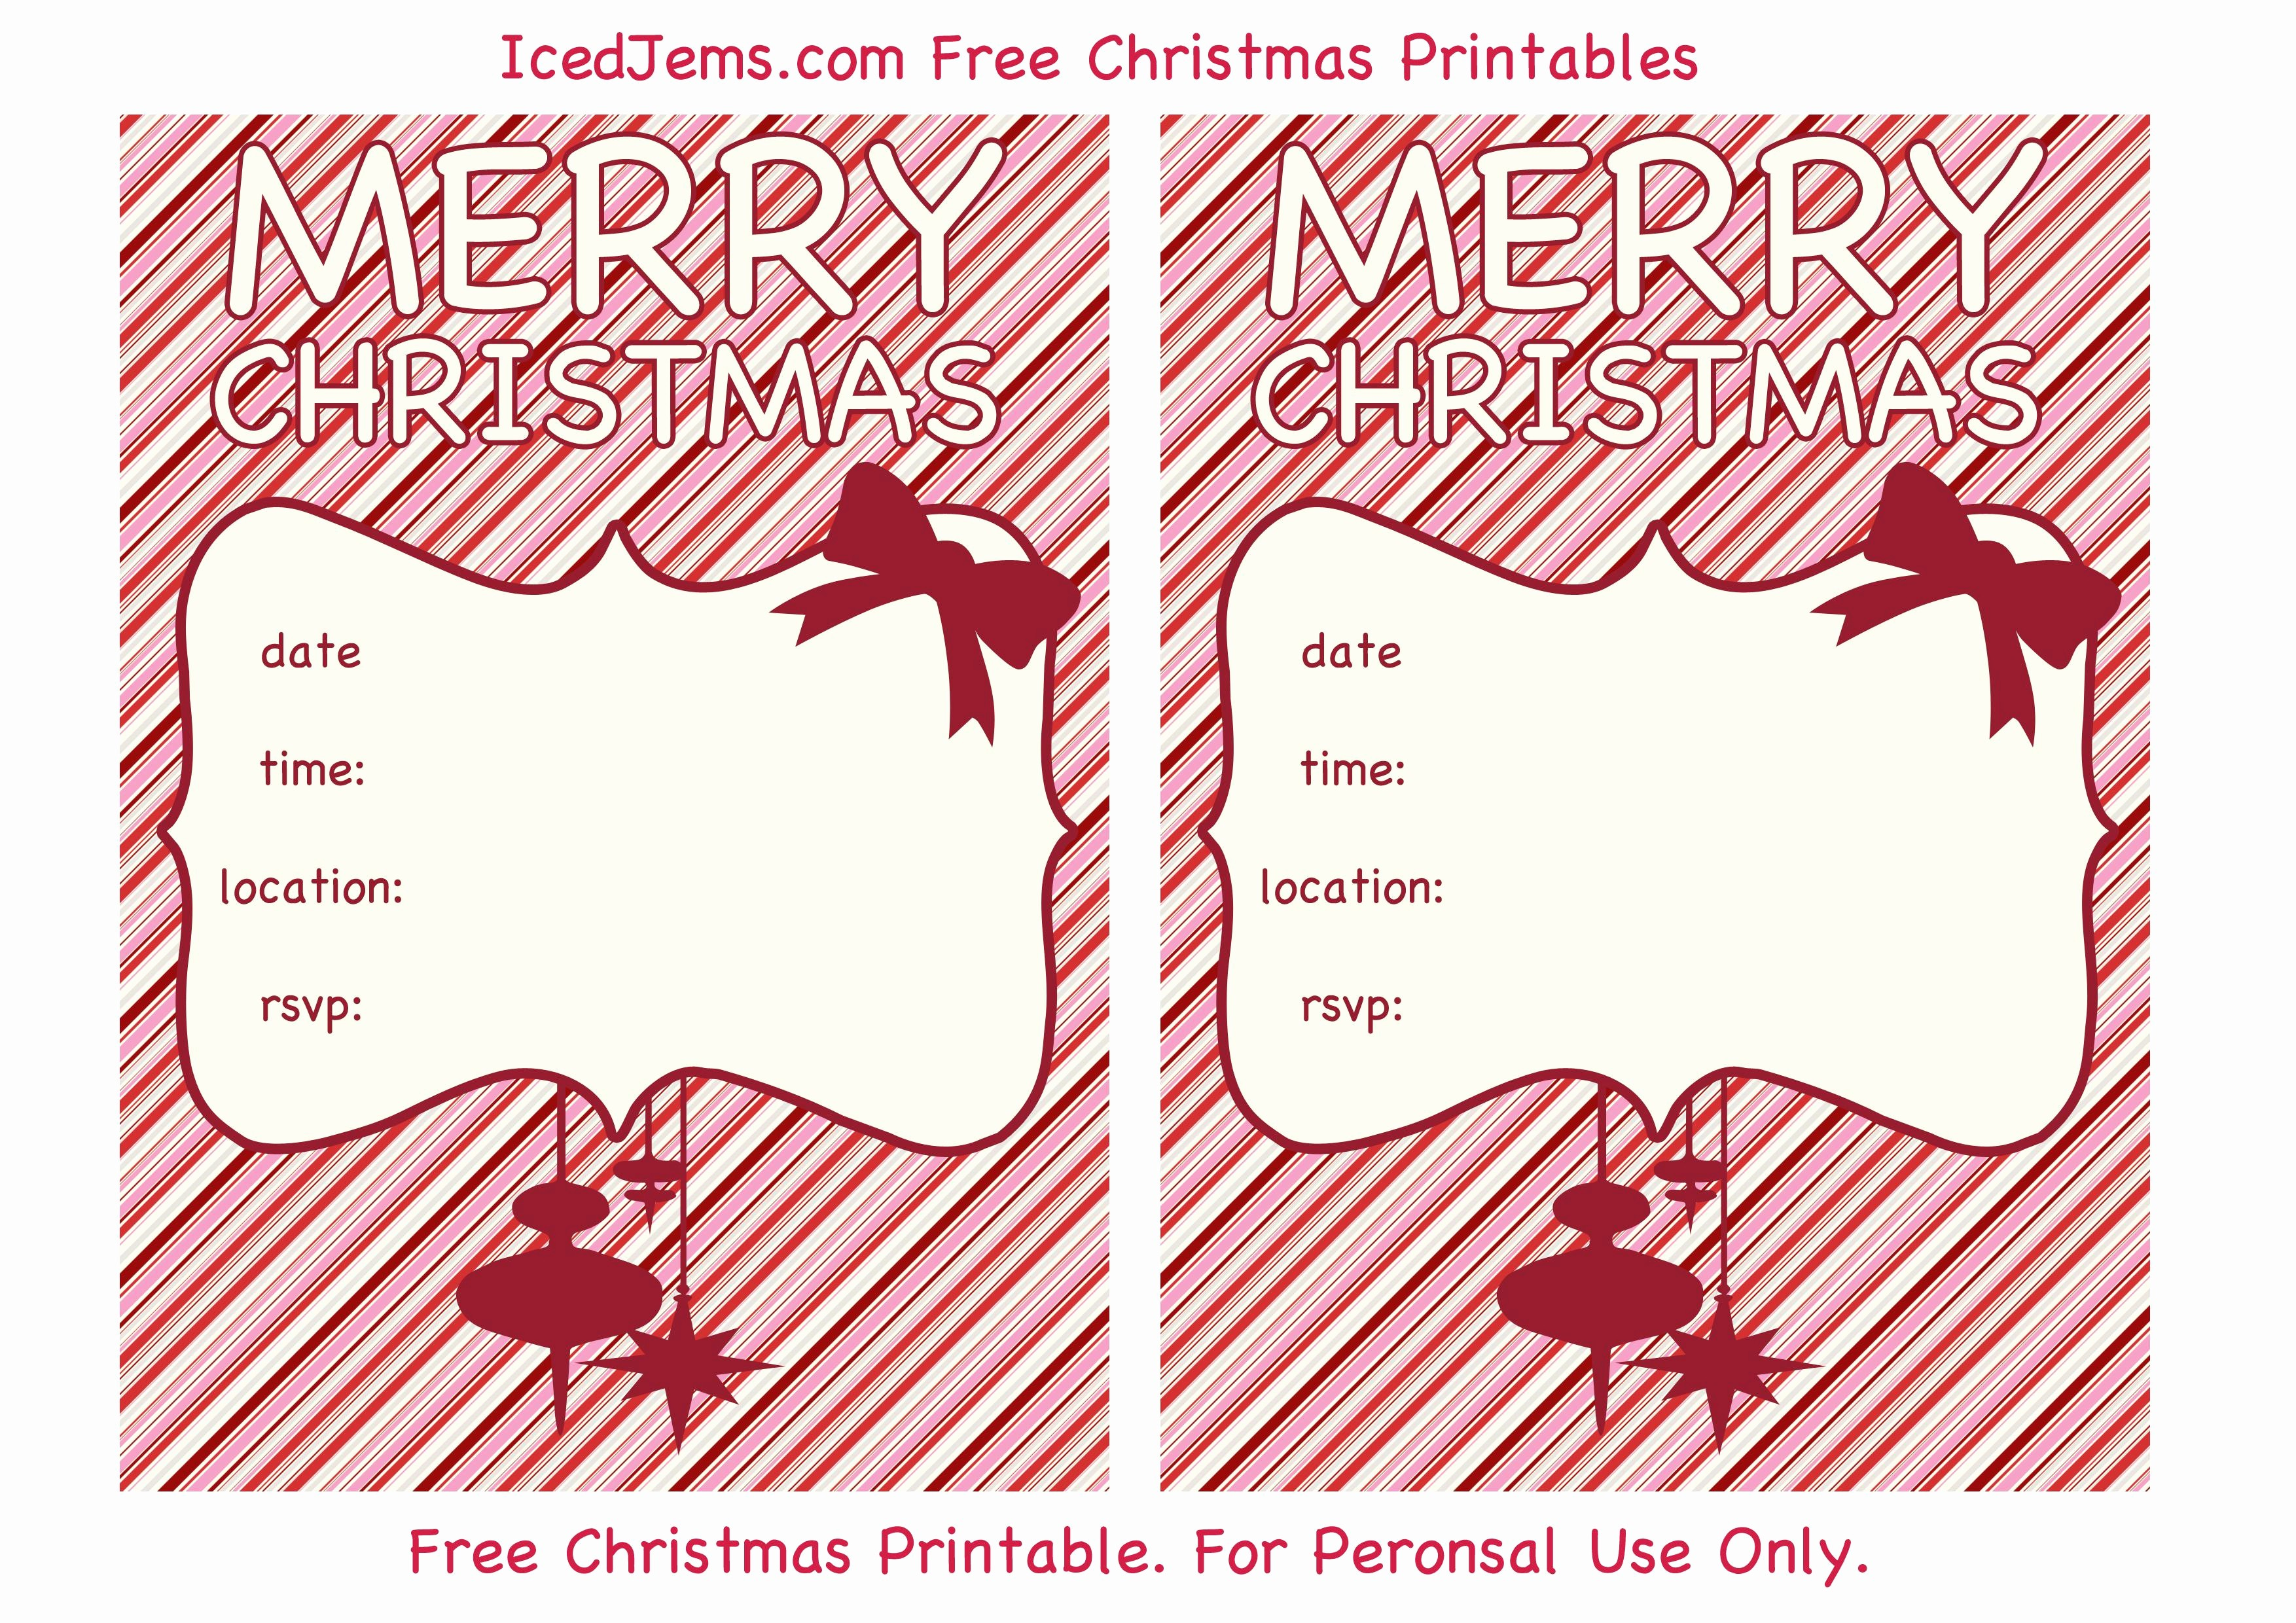 Holiday Party Invitations Template Word Inspirational Free Christmas Party Invitations